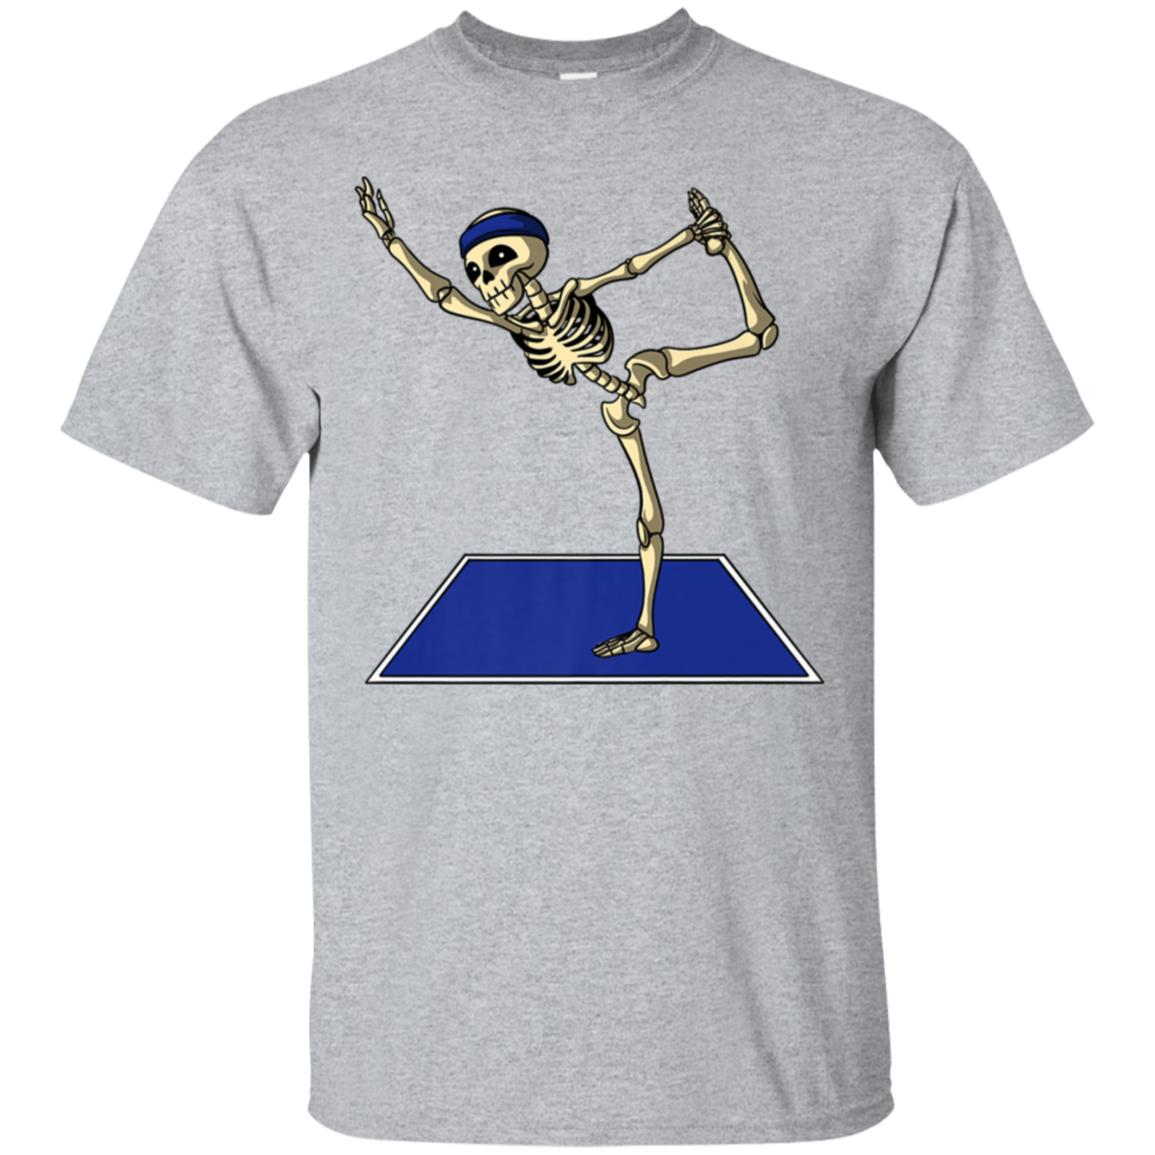 Creepy Skeleton Yoga Workout Poses Funny Halloween T-Shirt 99promocode